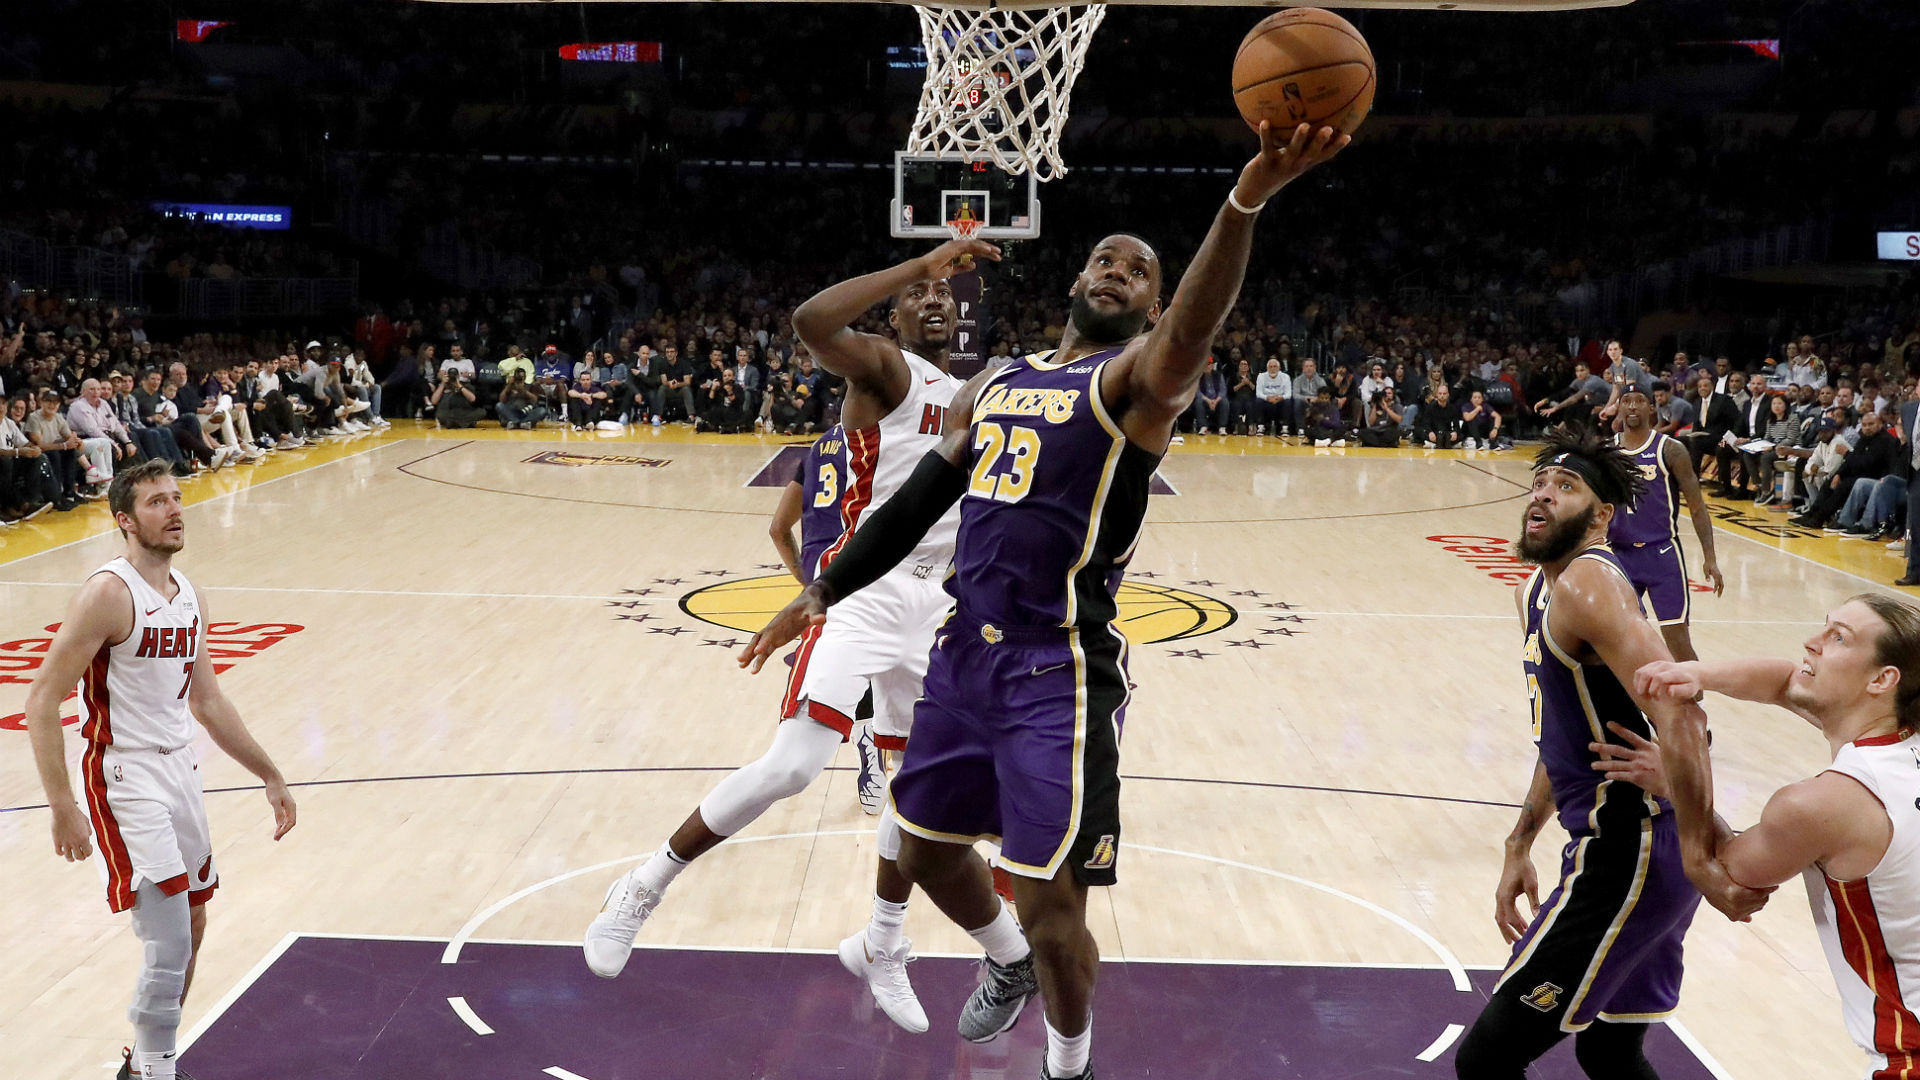 Lakers Vs Heat Live Score Updates Highlights From Game 1 Of The 2020 Nba Finals The Union Journal